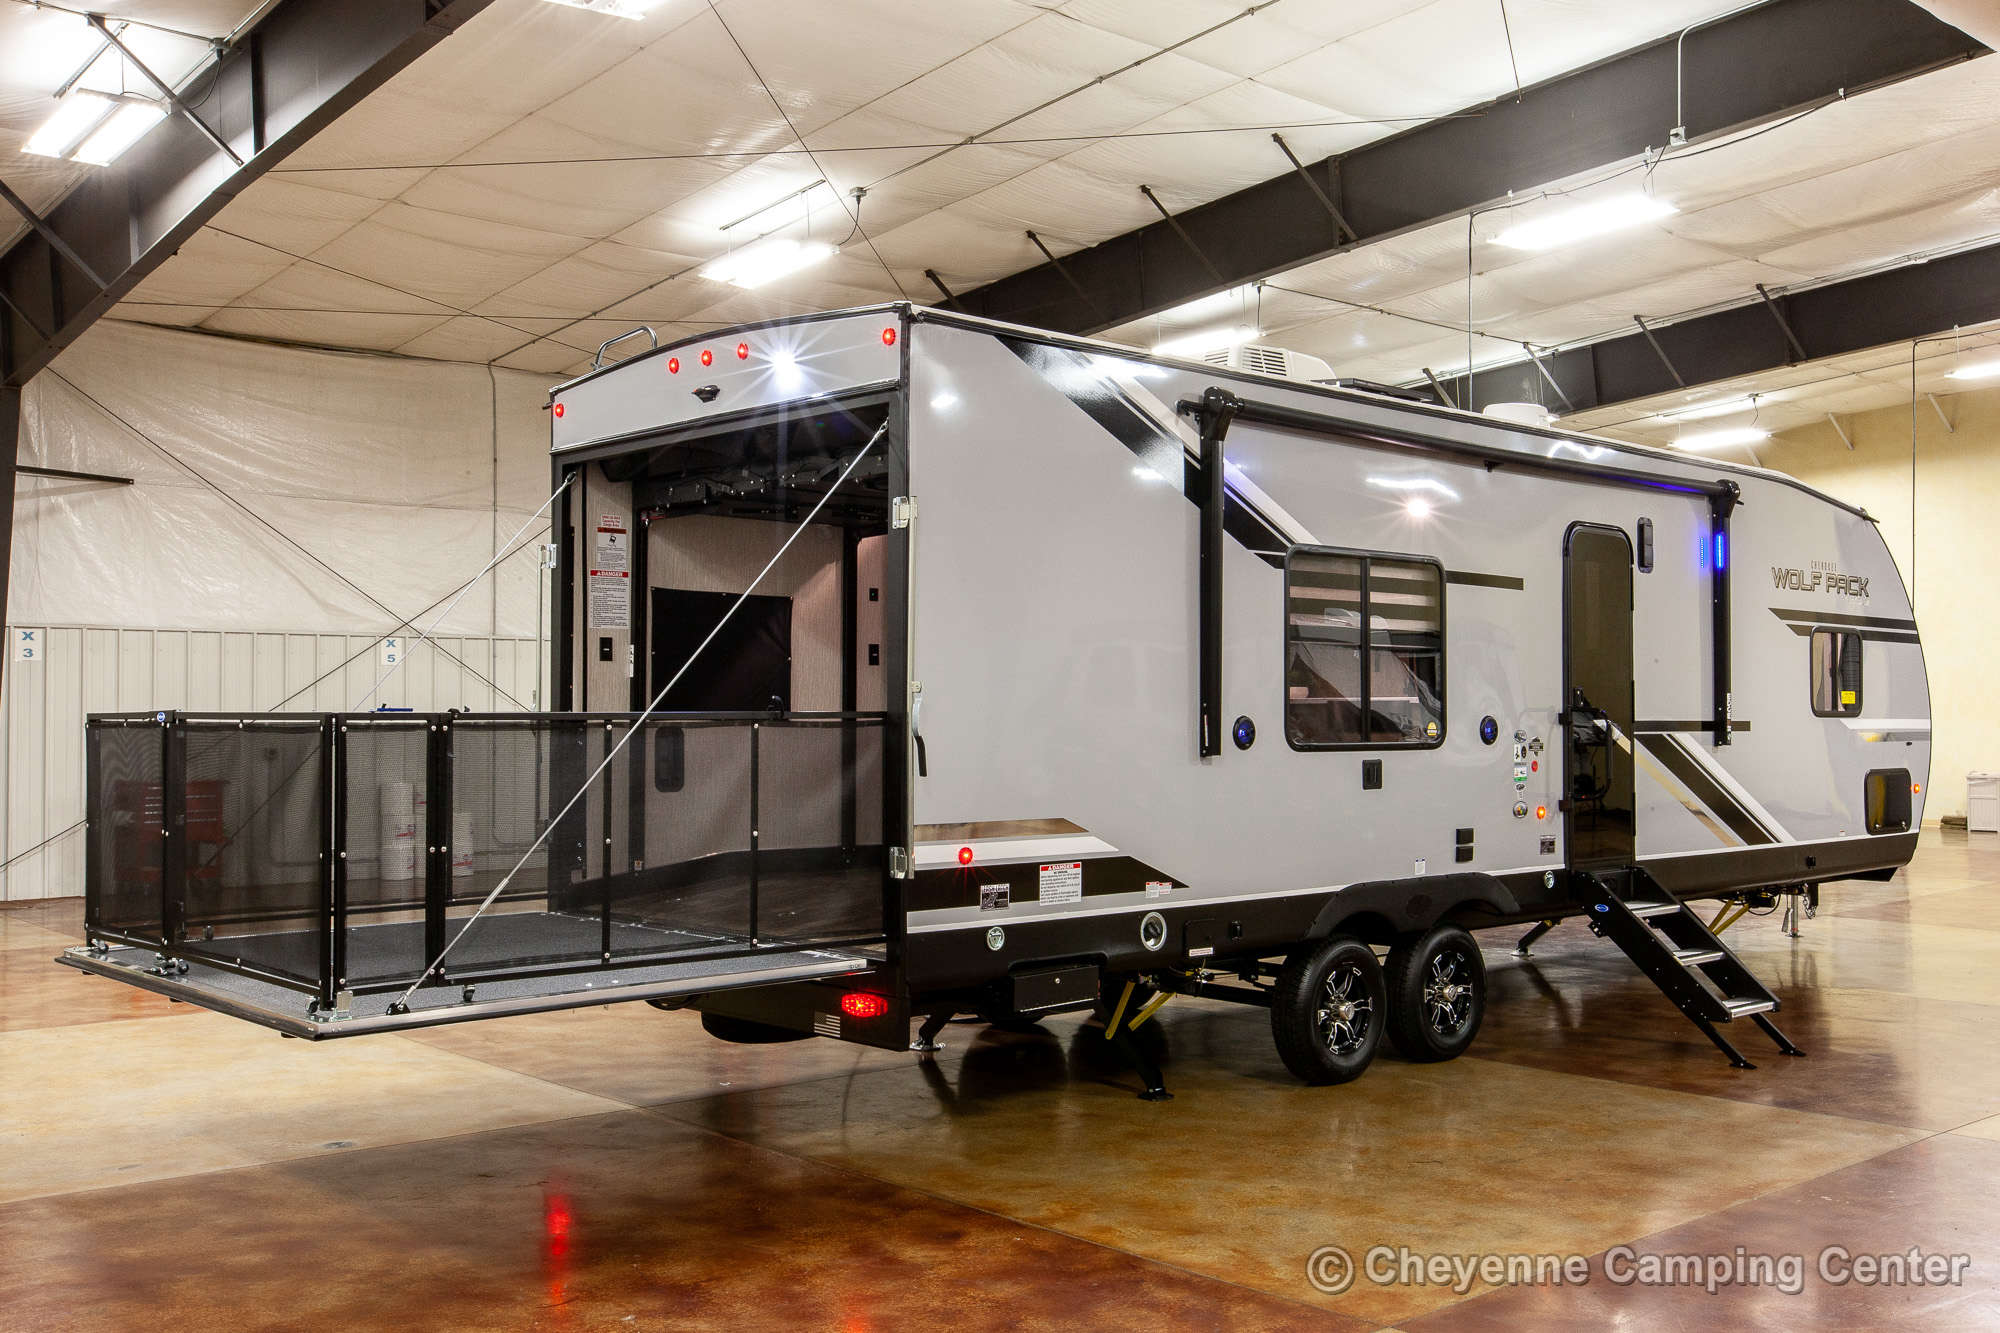 2021 Forest River Cherokee Wolf Pack 23PACK15 Bunkhouse Toy Hauler Travel Trailer Exterior Image